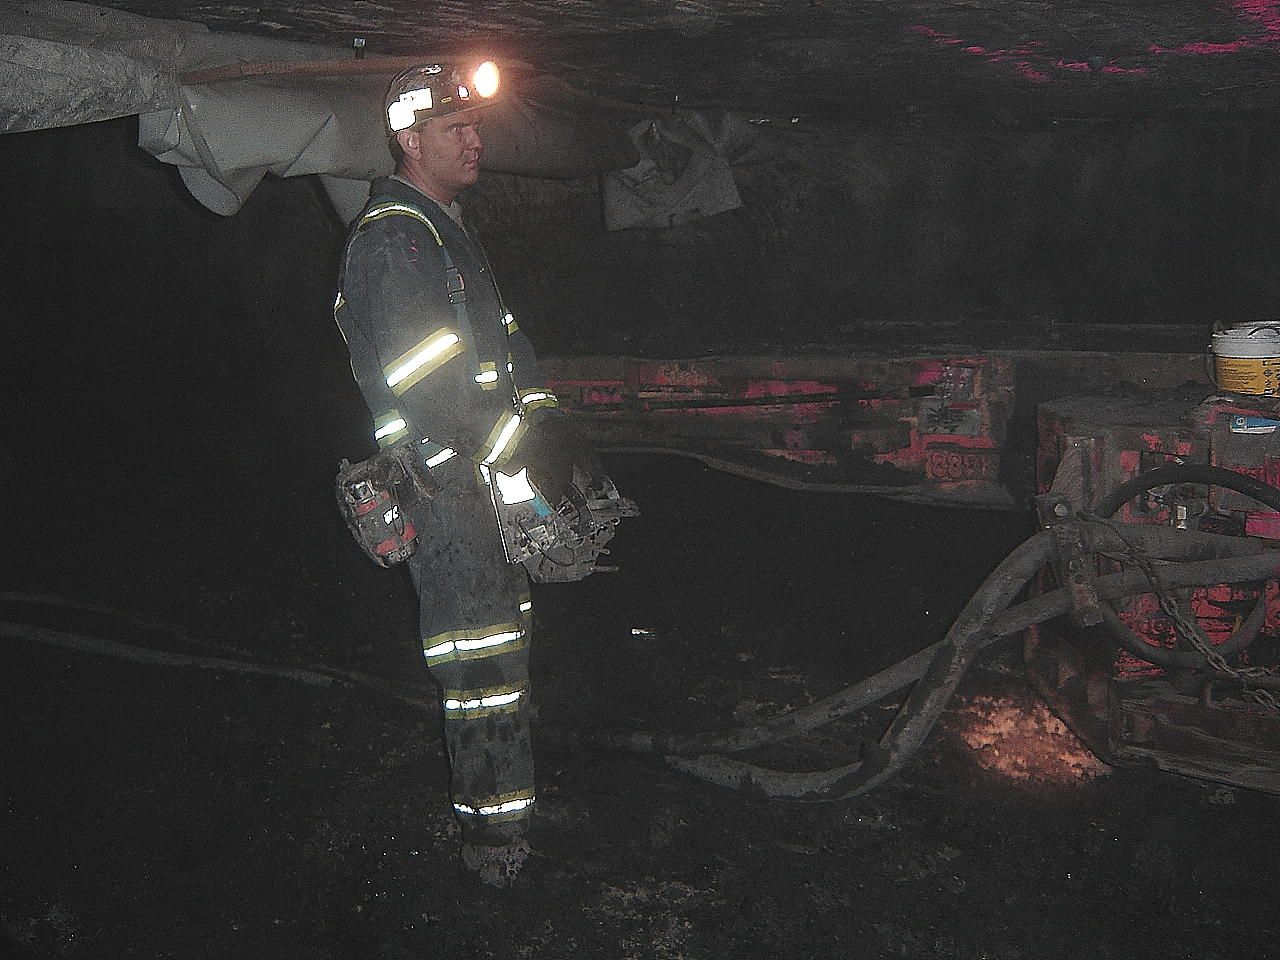 best images about coal mining virginia coke a west virginia coal miner is remotely operating a continuous mining machine that extracts coal from